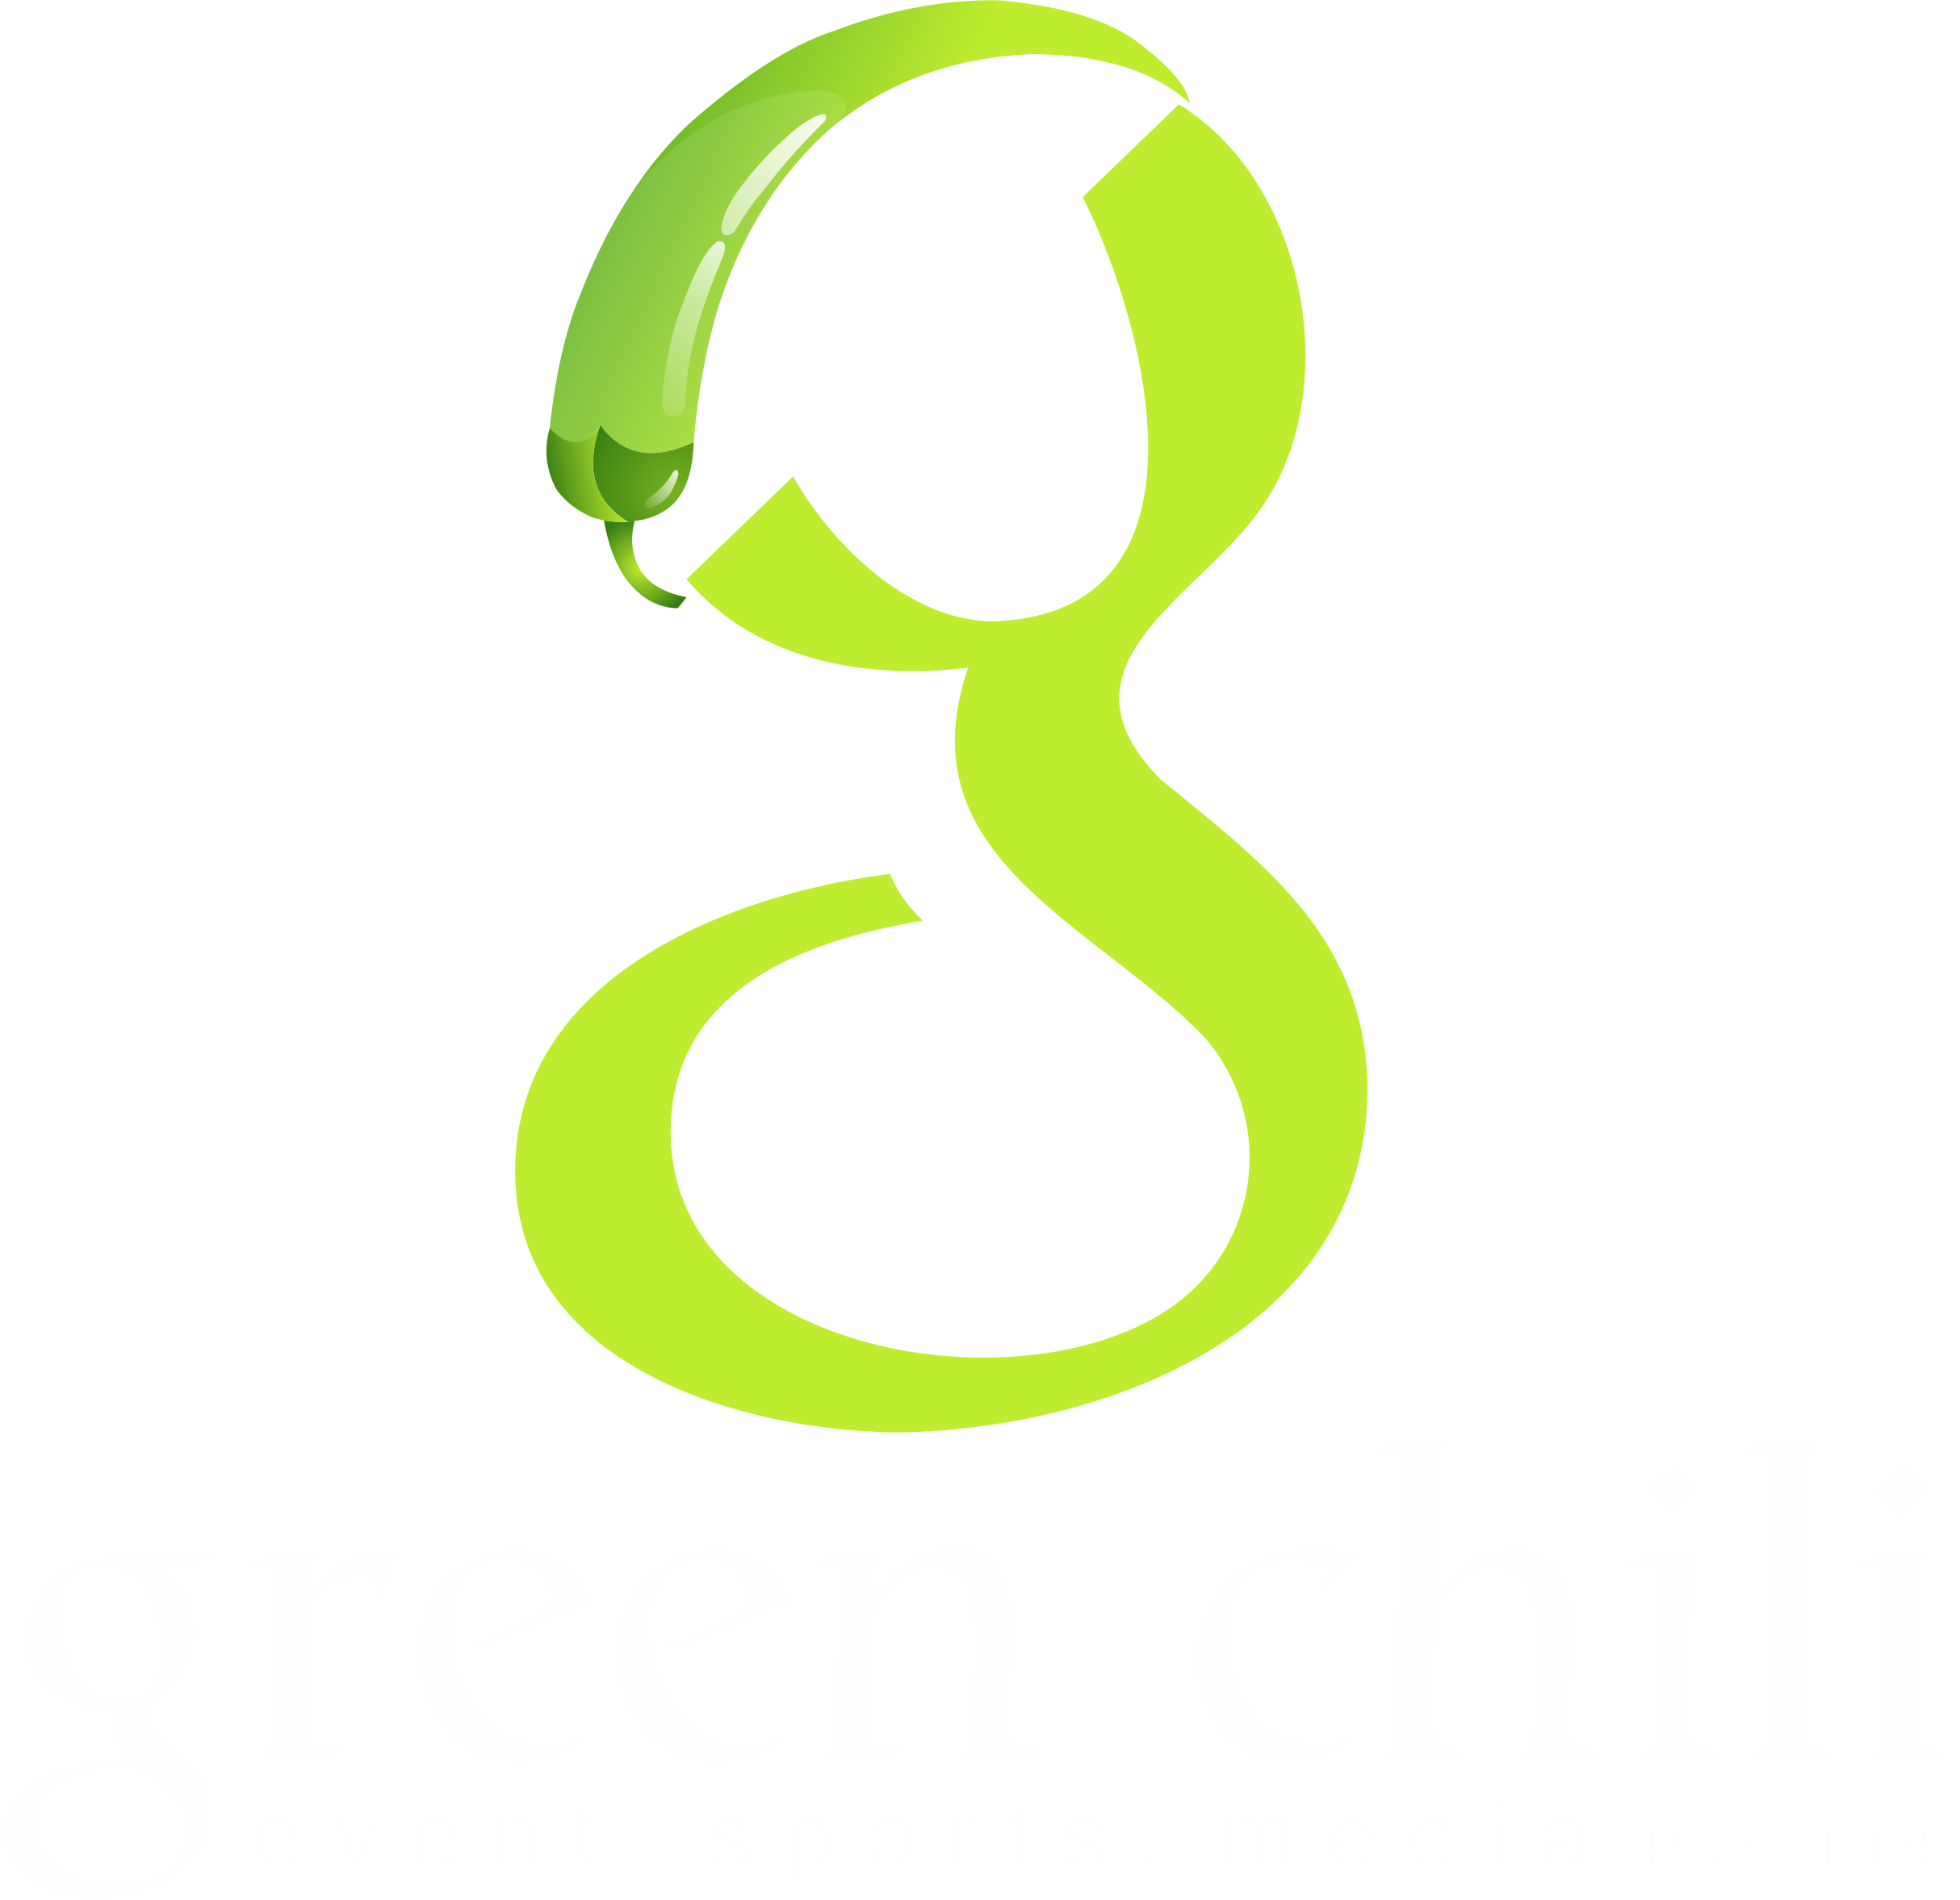 greenchili event logo